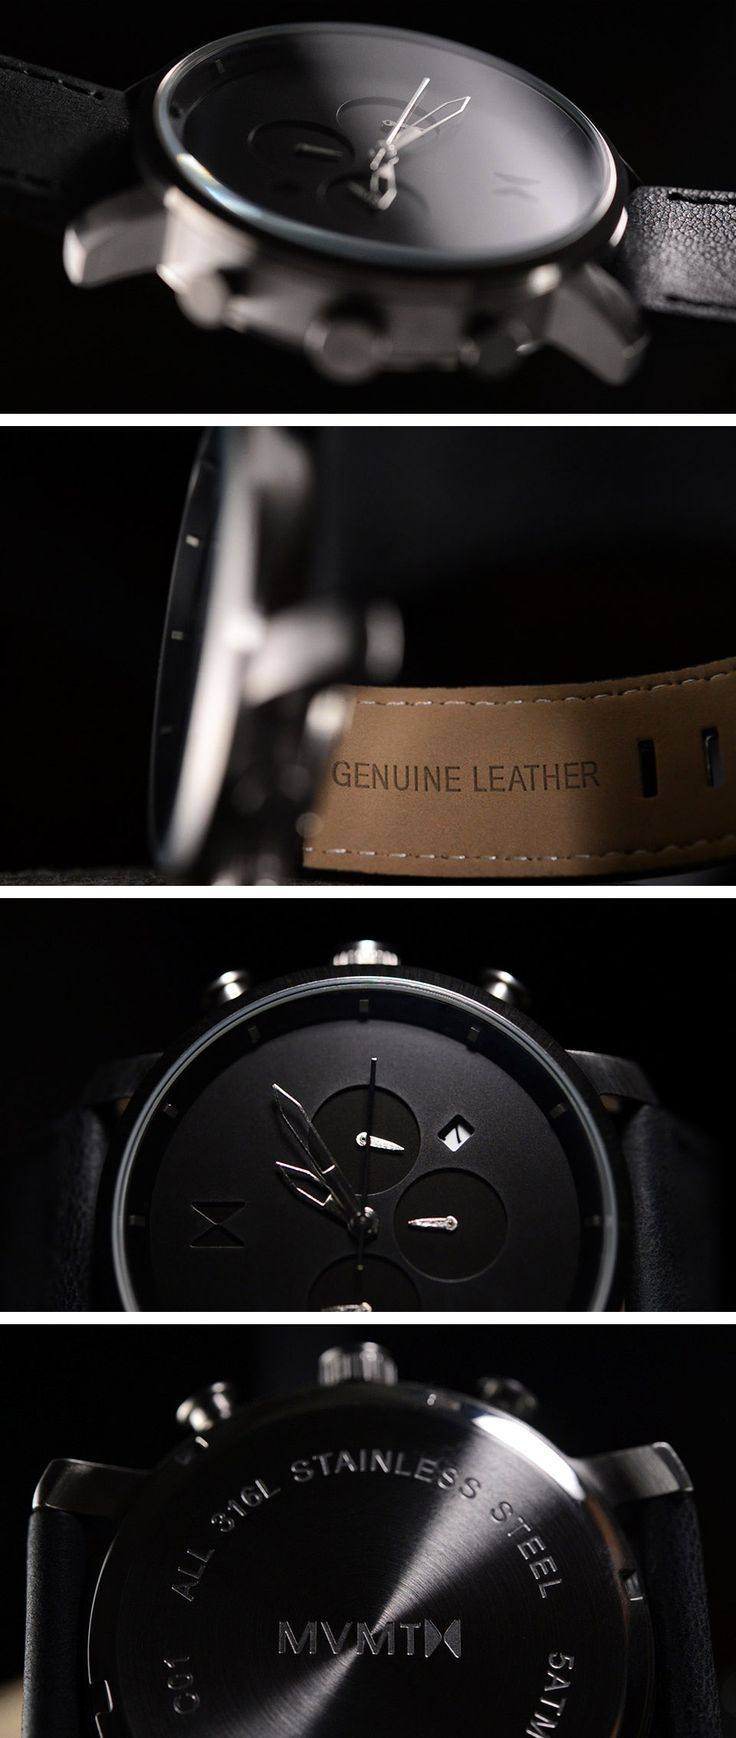 VIDEO: MVMT Chrono Watch review in cinematic HD.